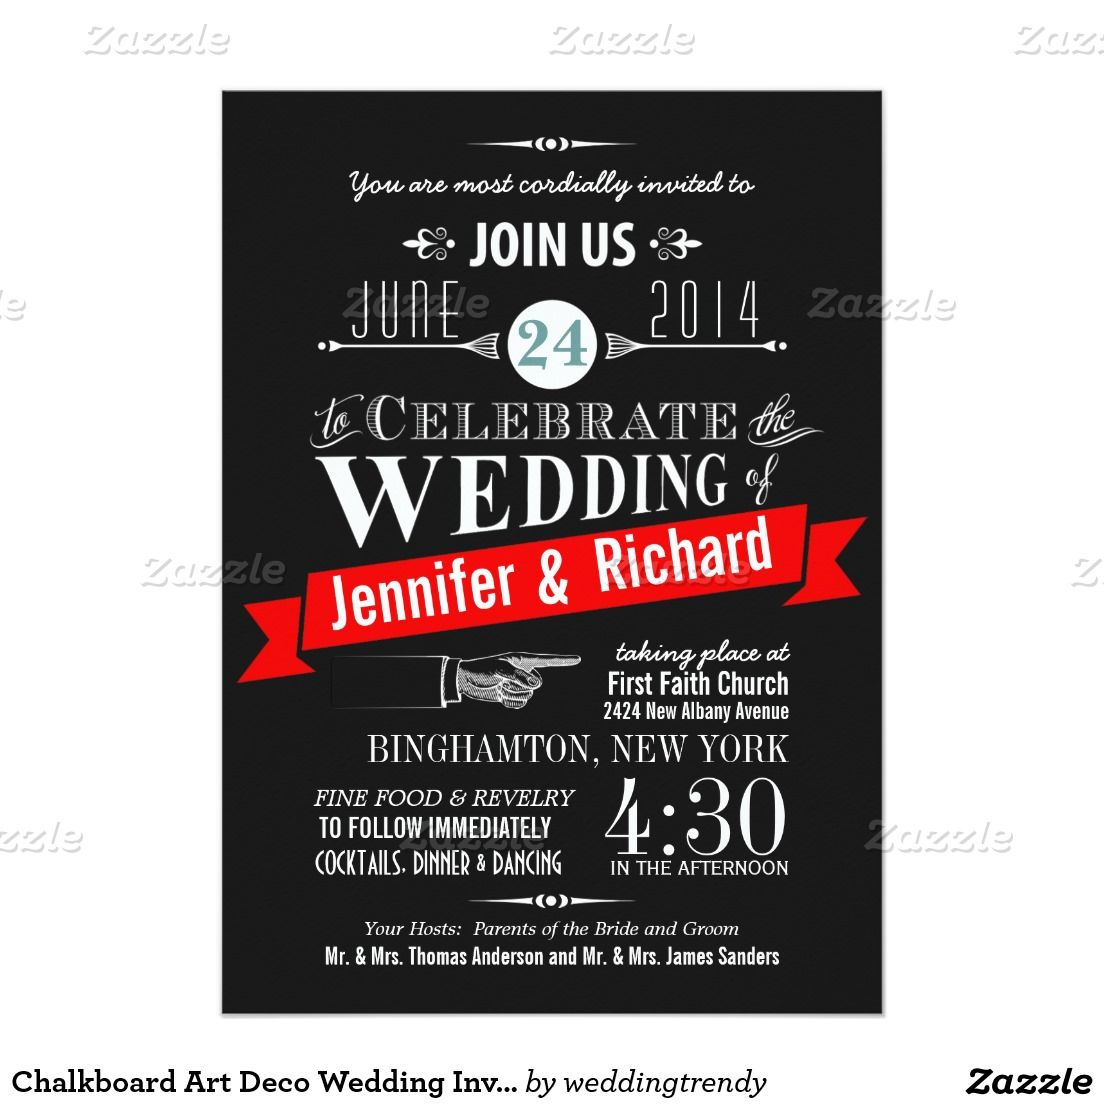 Chalkboard Art Deco Wedding Invitations | Pinterest | Wedding and ...